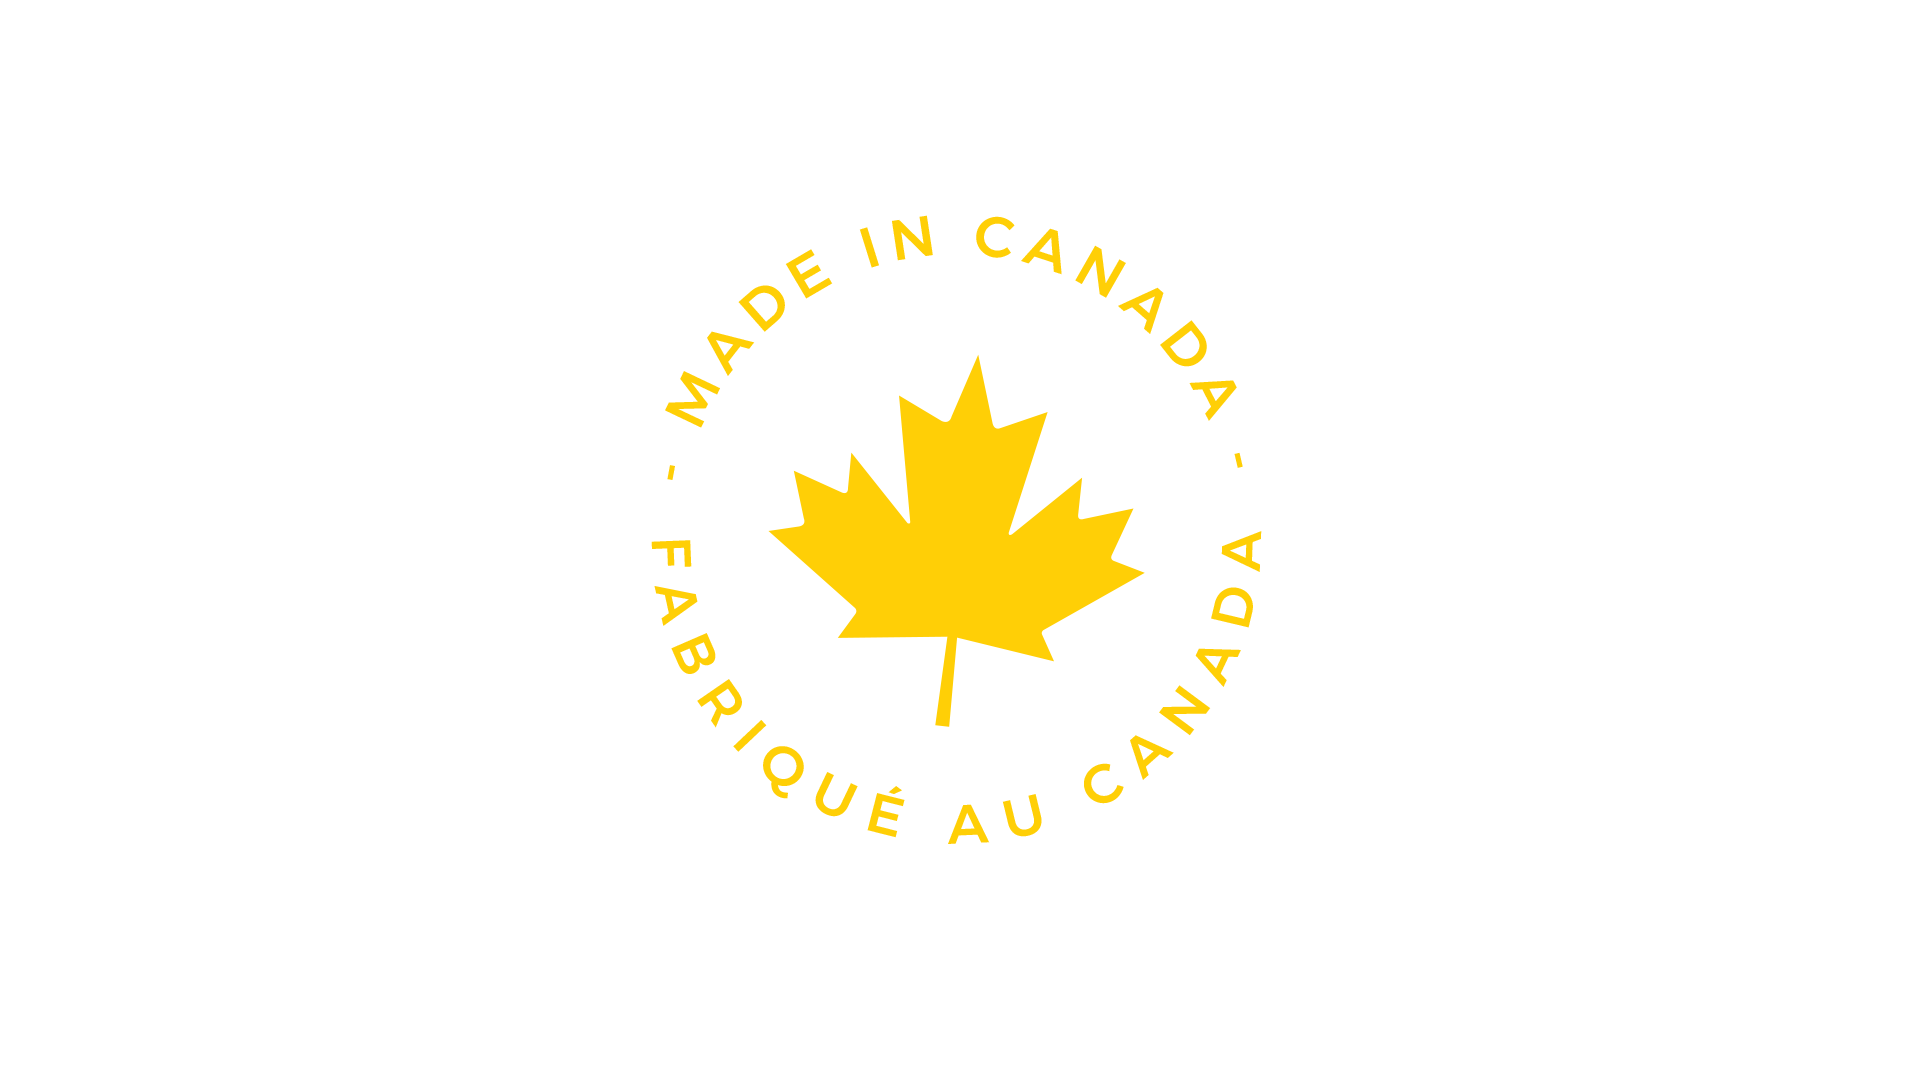 made in canada logo litterlocker refills